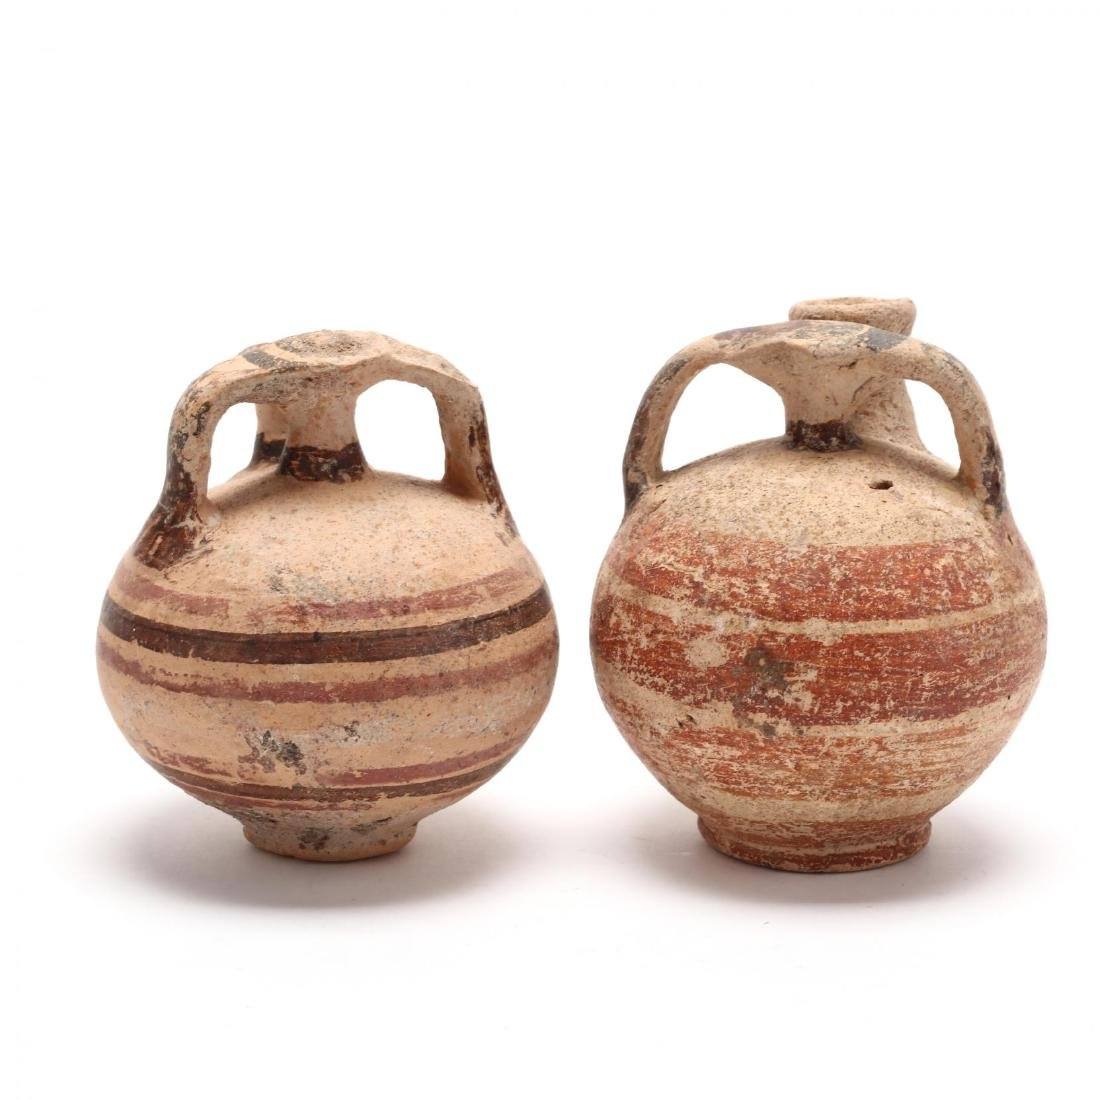 Two Cypriot-Mycenaean Stirrup Juglets - 4